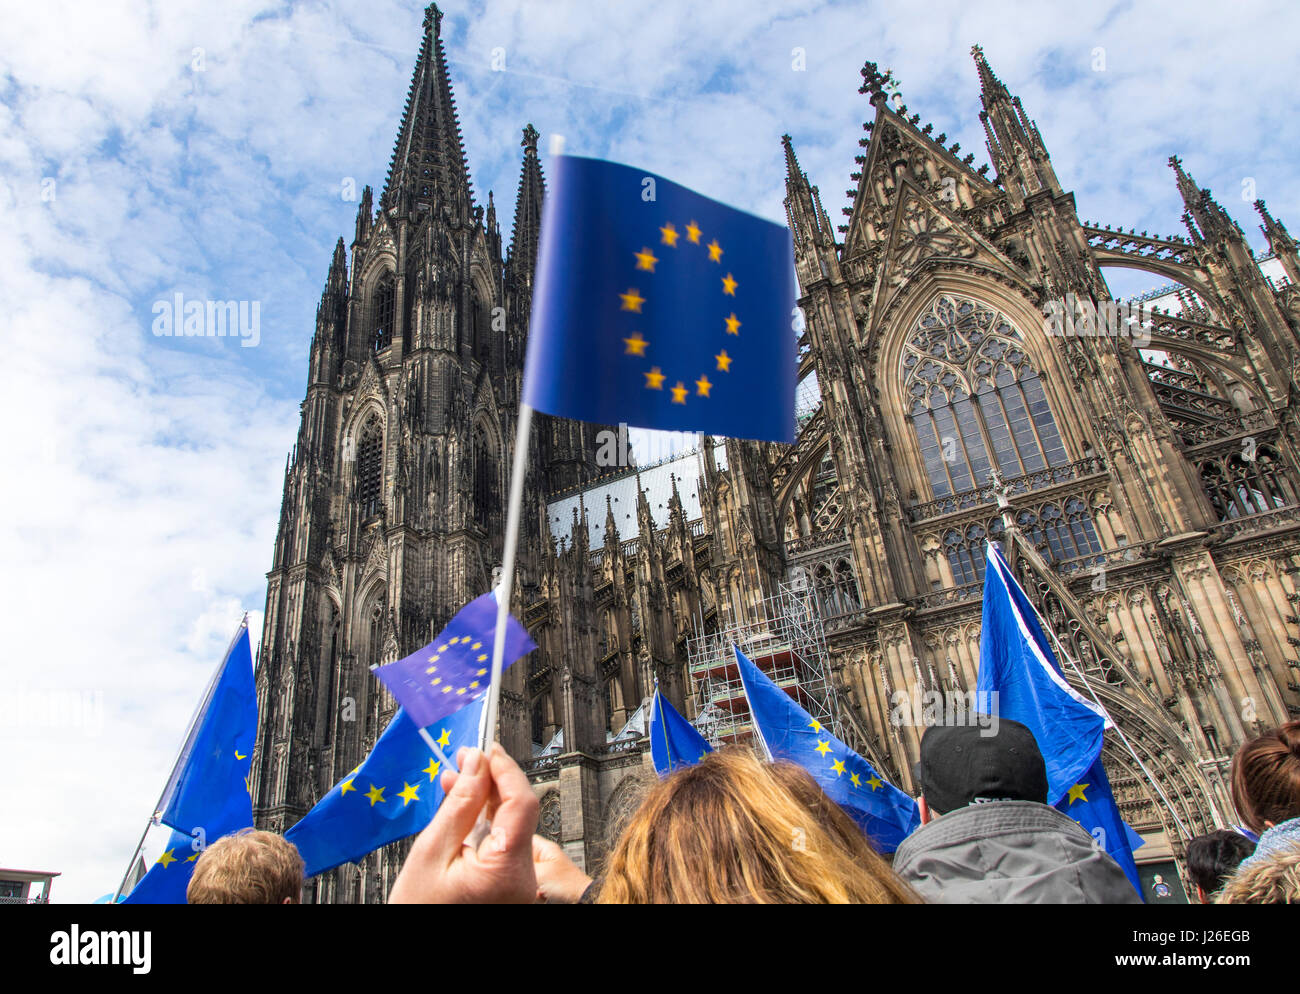 Puls of Europe movement, a pro-European citizen's initiative, people meet every Sunday afternoon in several - Stock Image